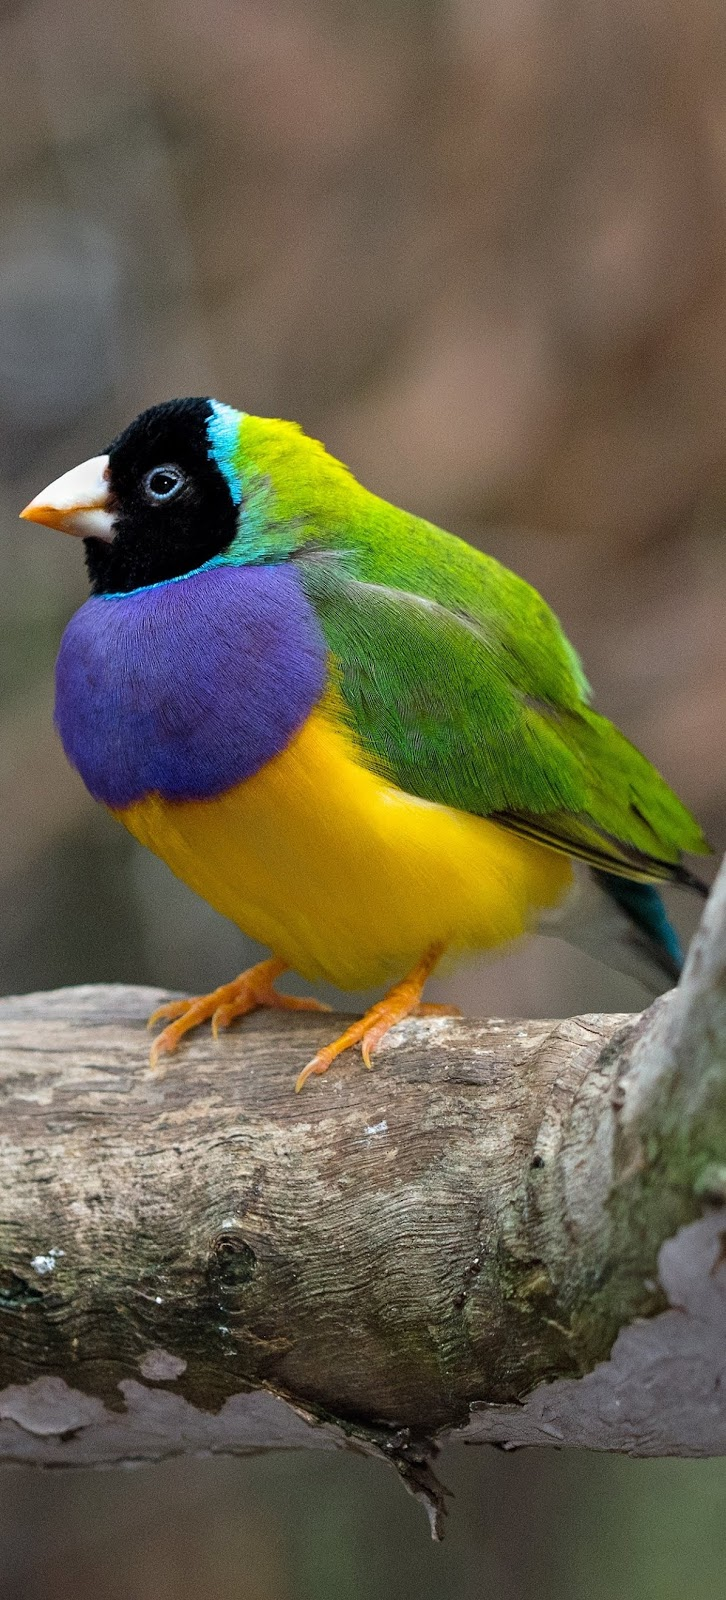 A beautiful gouldian finch.